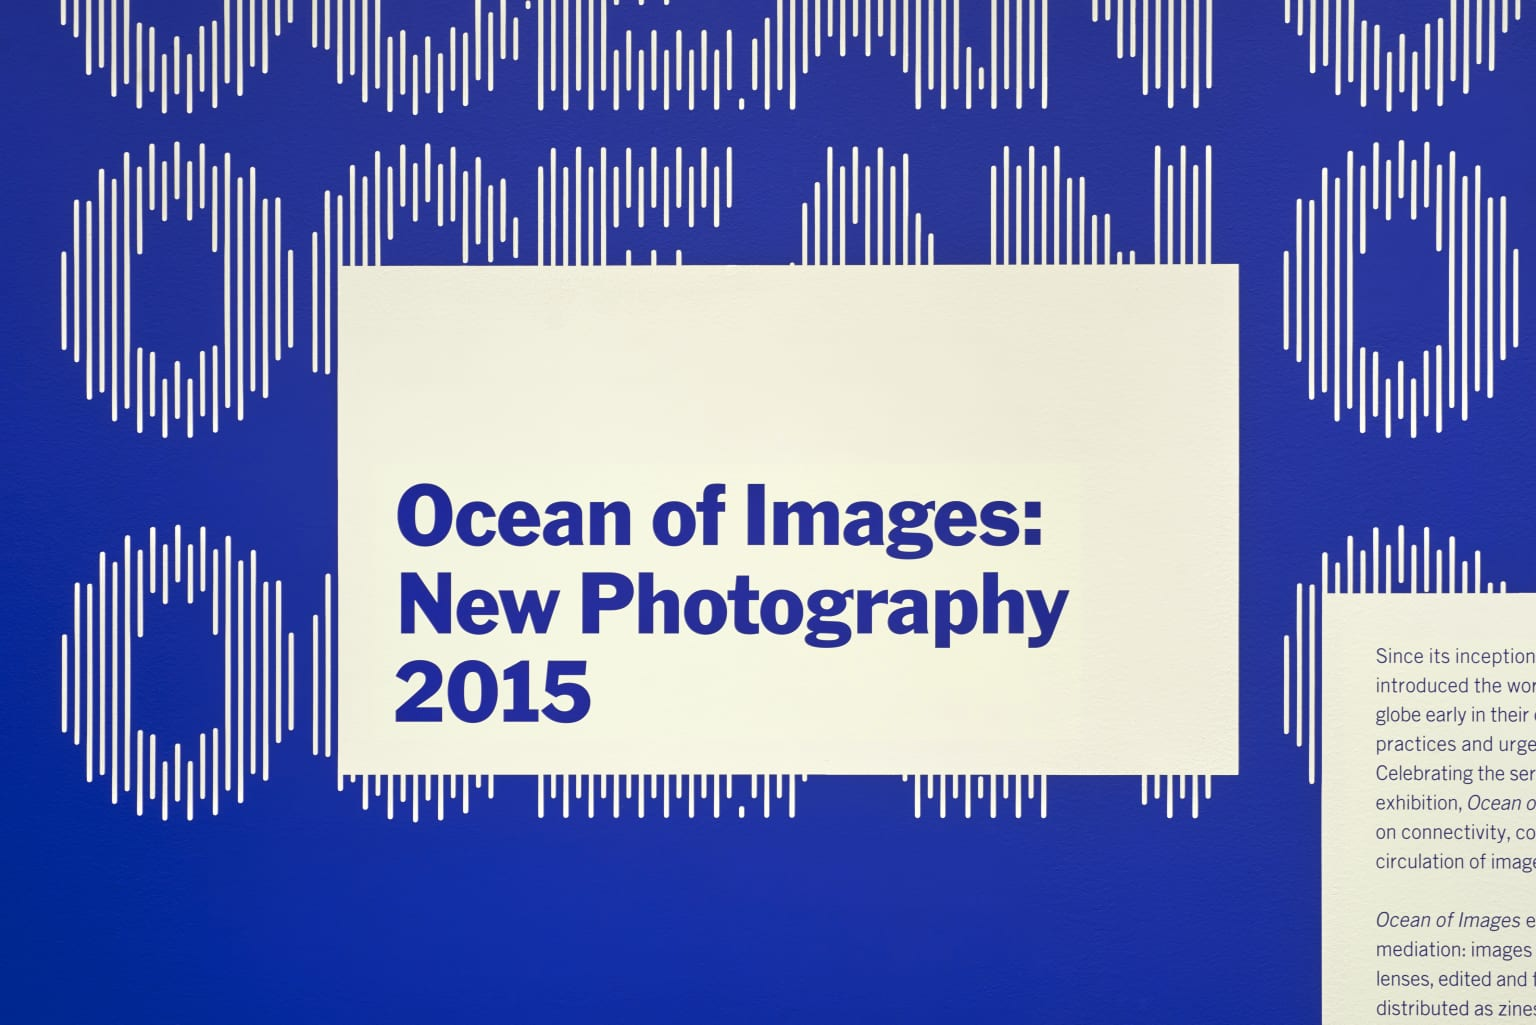 Ocean of Images: New Photography 2015